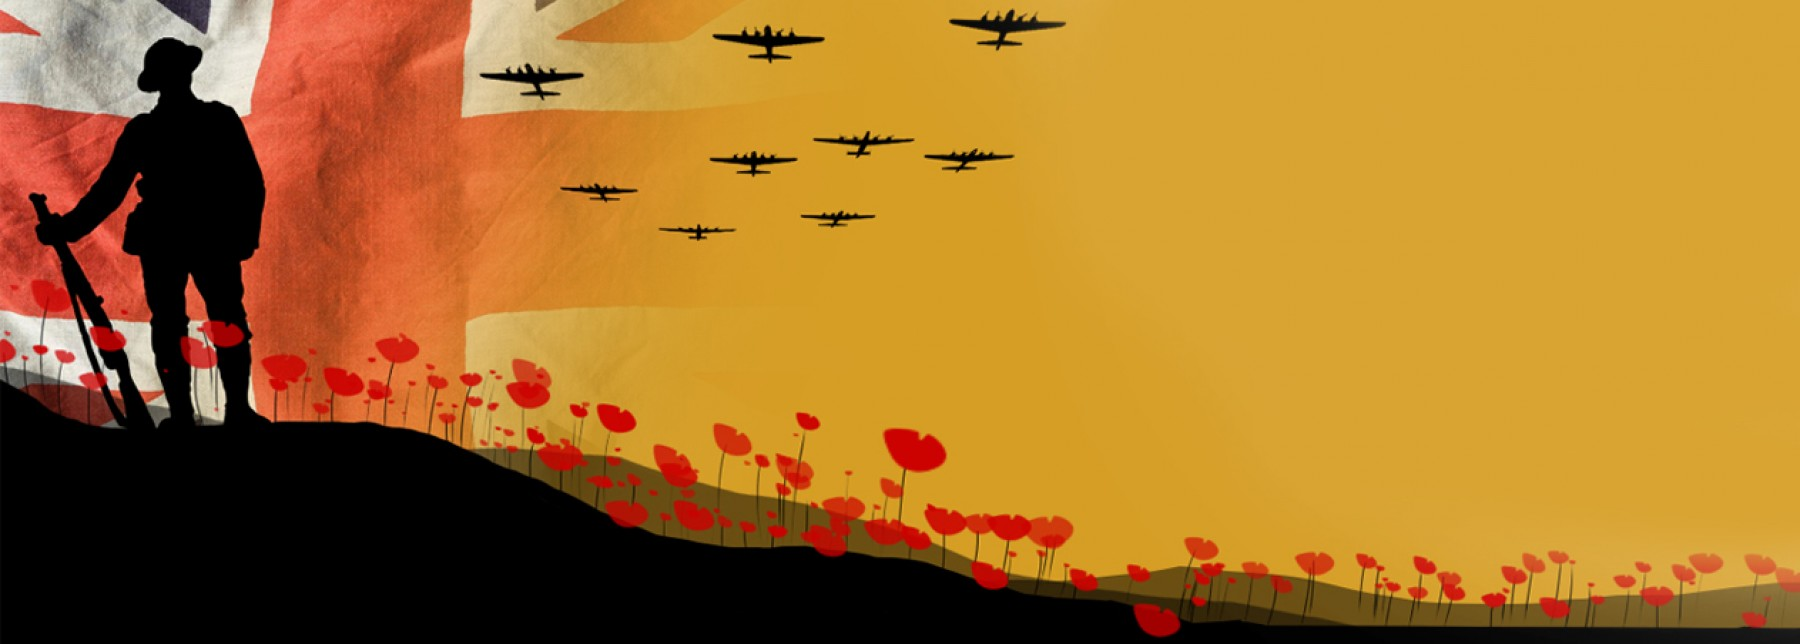 Portishead Book of Remembrance - banner image